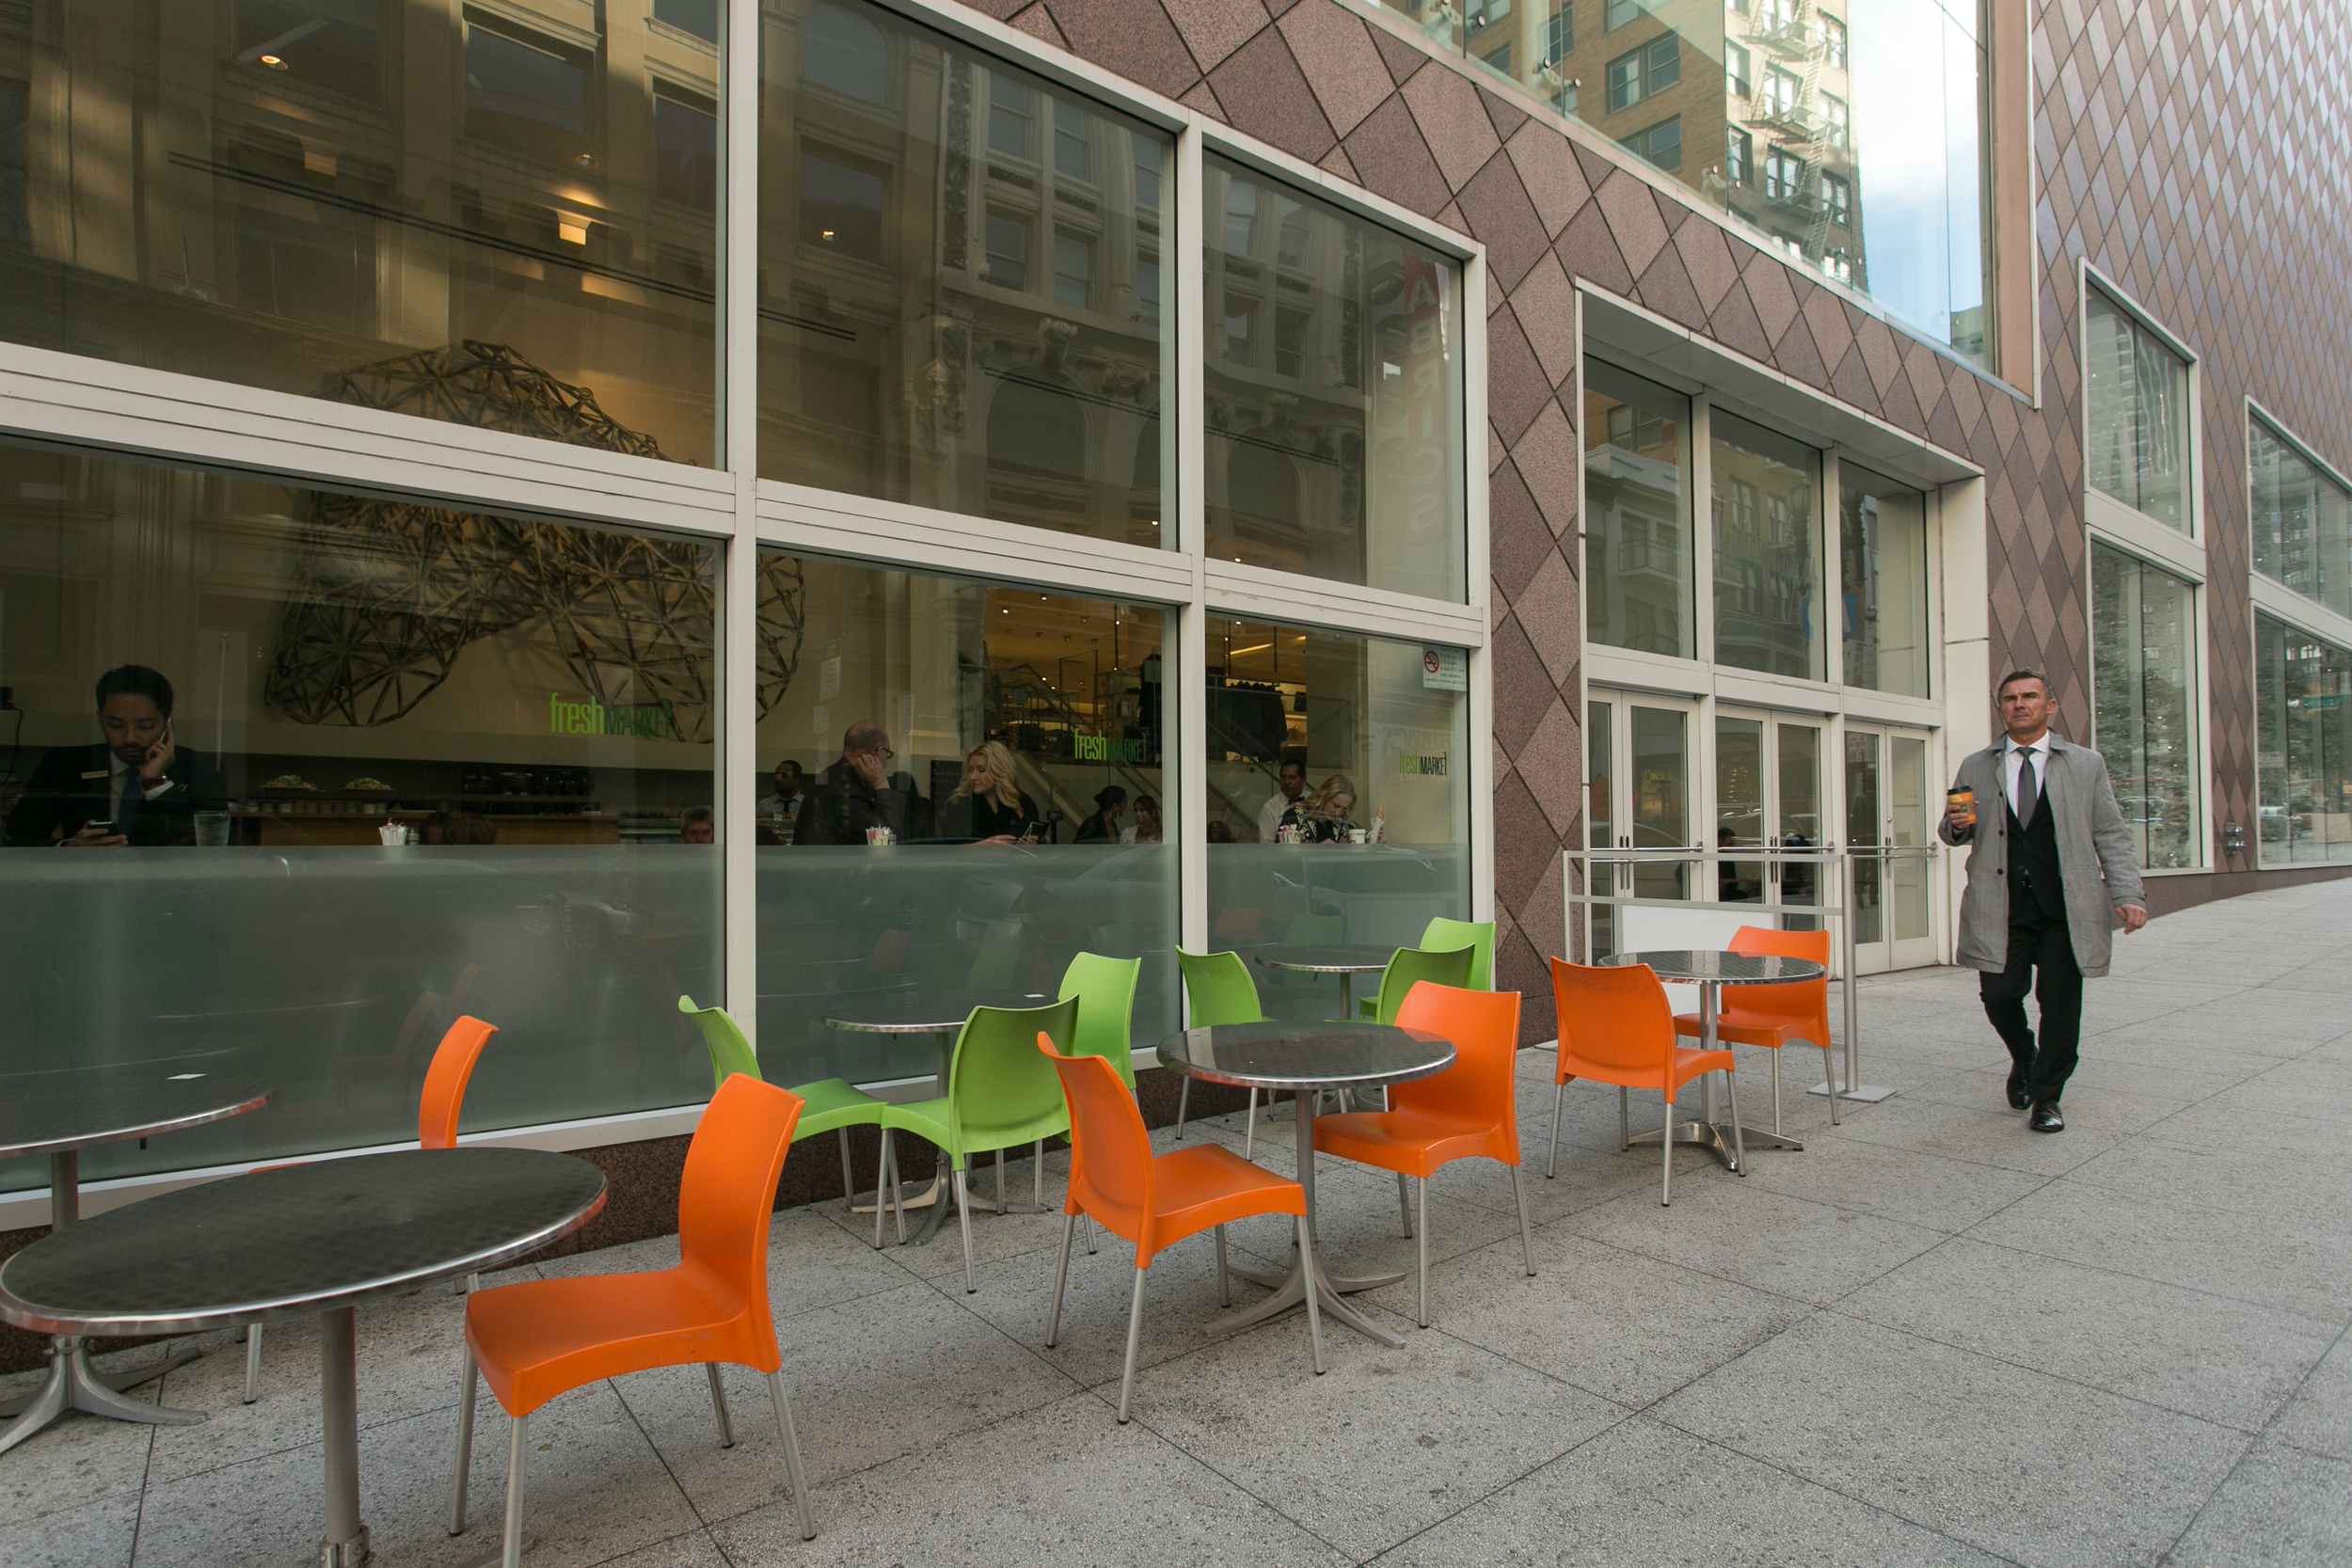 008008Downtown-GearySt-UnionSquare-09.jpg